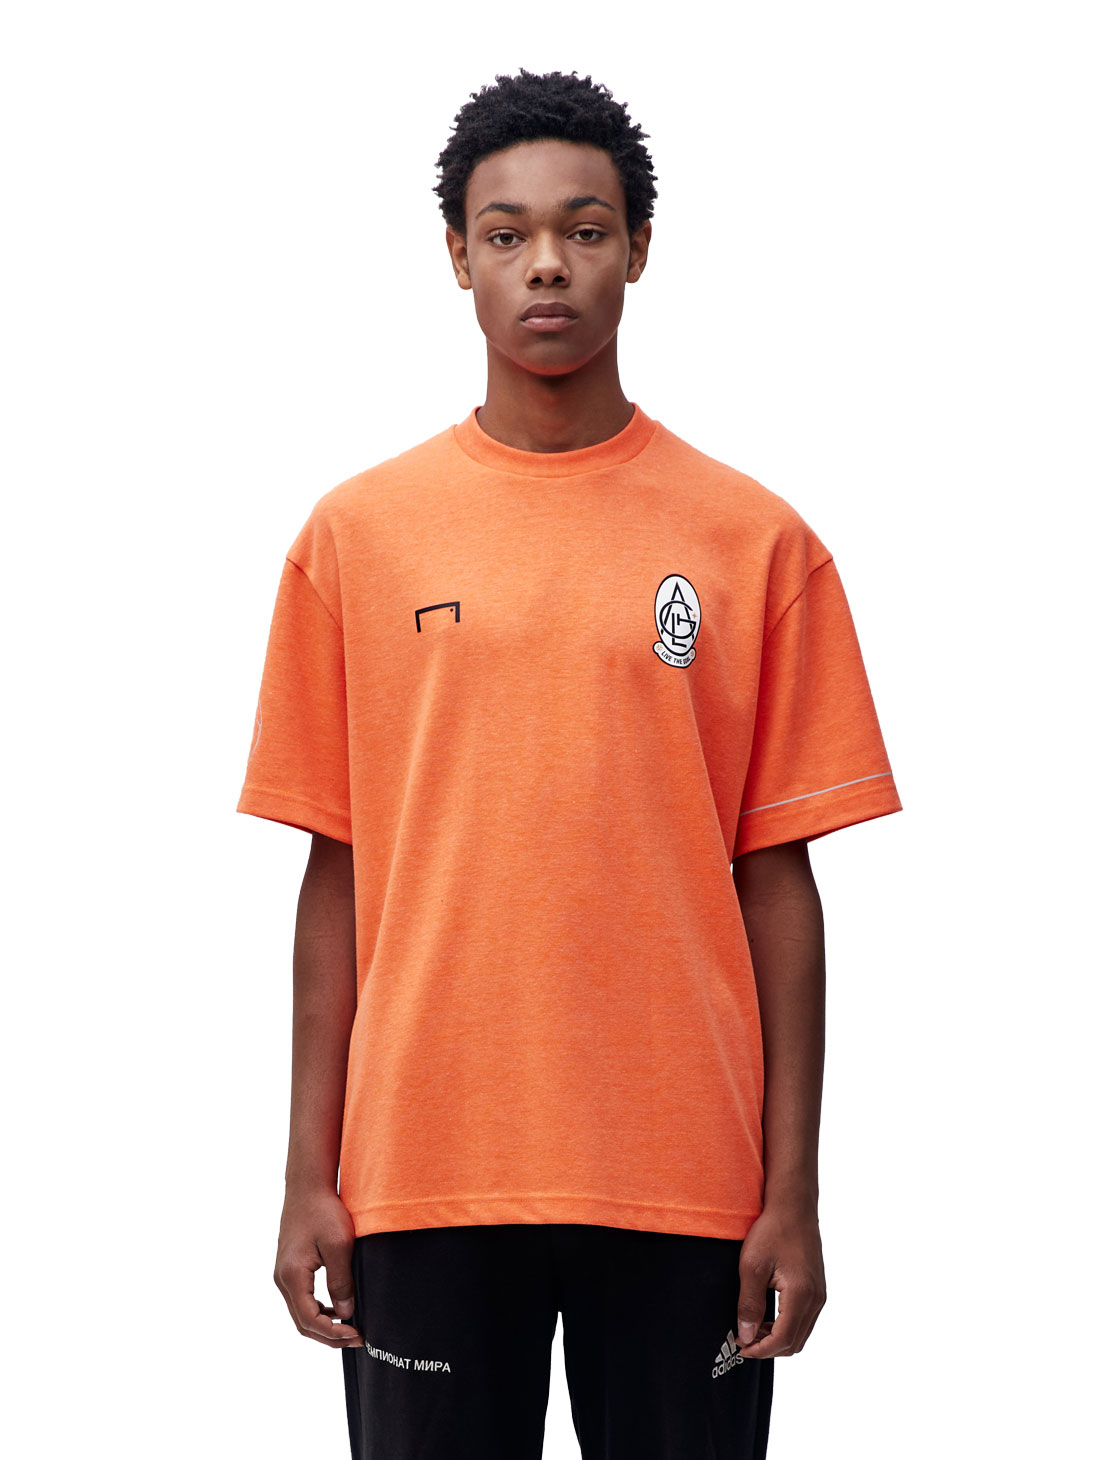 GOALSTUDIO EMBLEM TEE - ORANGE